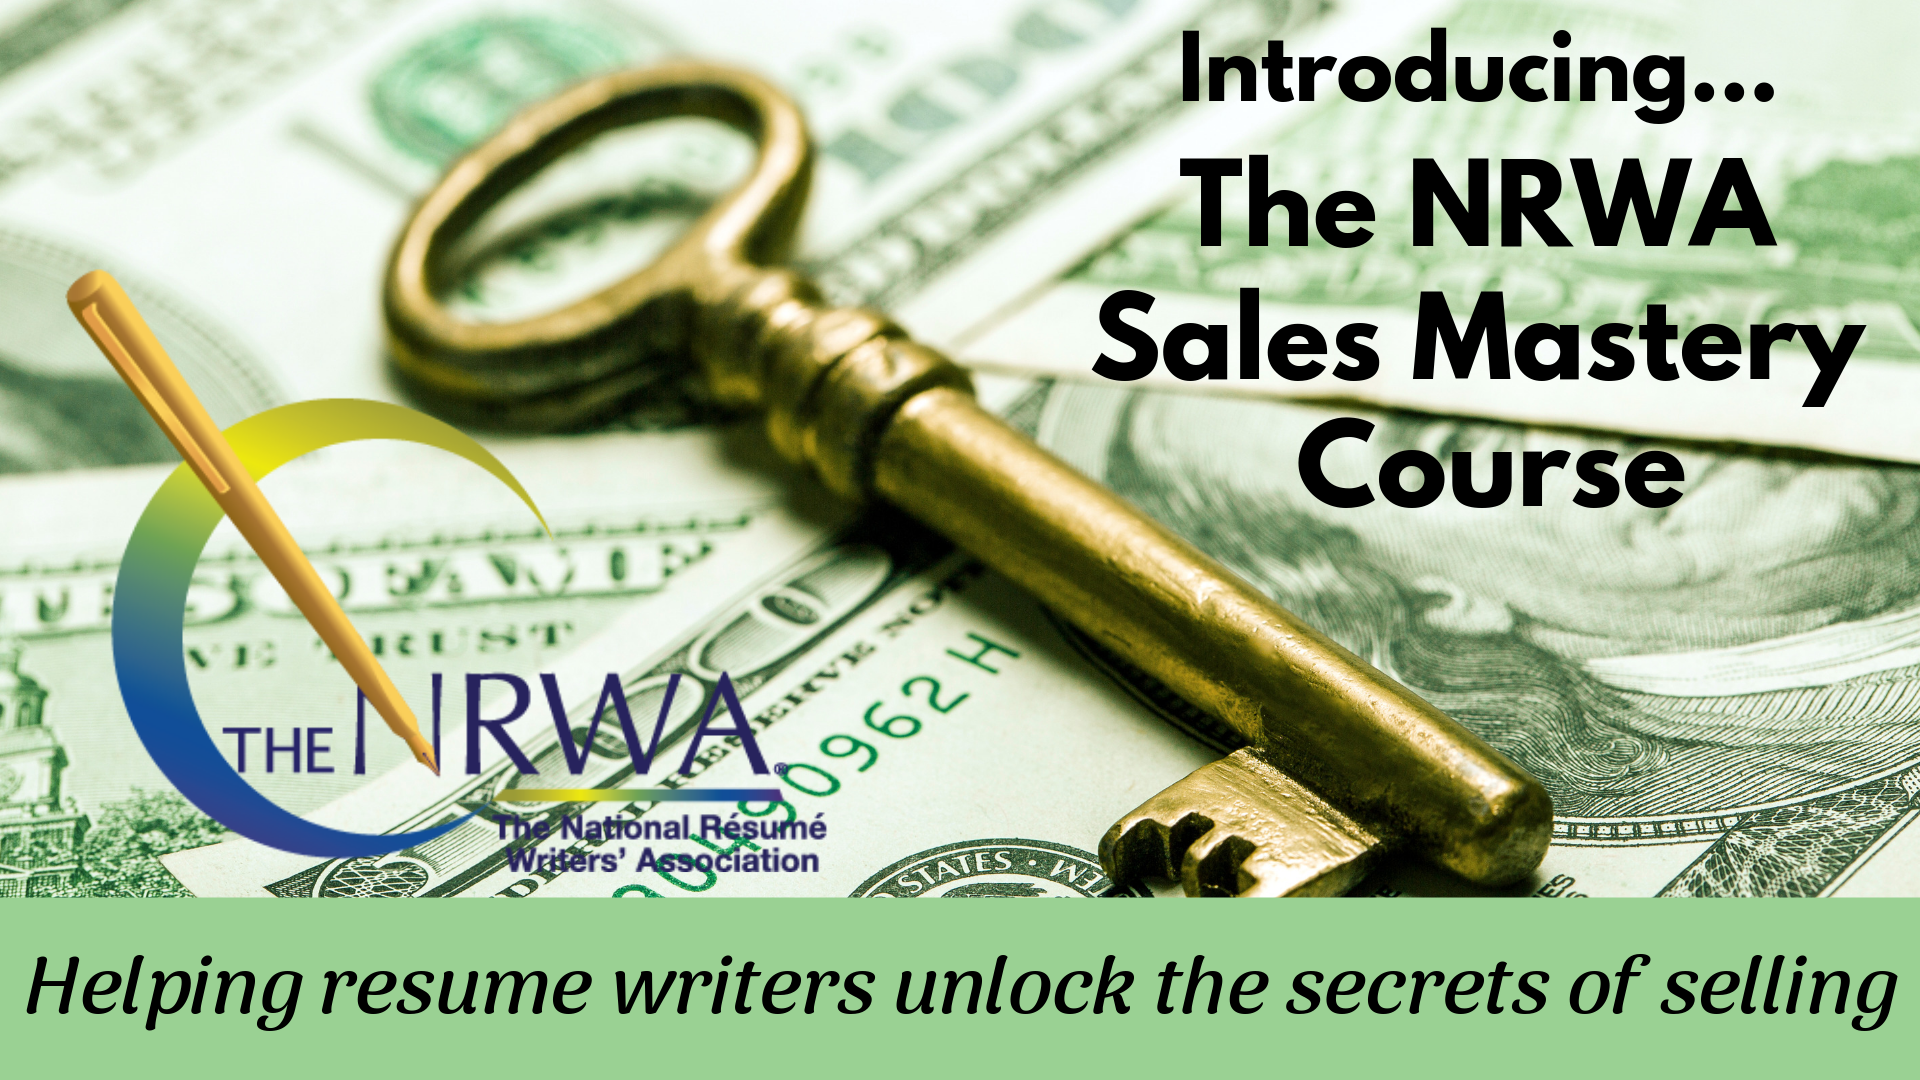 Introducing The NRWA Sales Mastery Course - Helping resume writers unlock the secrets of selling